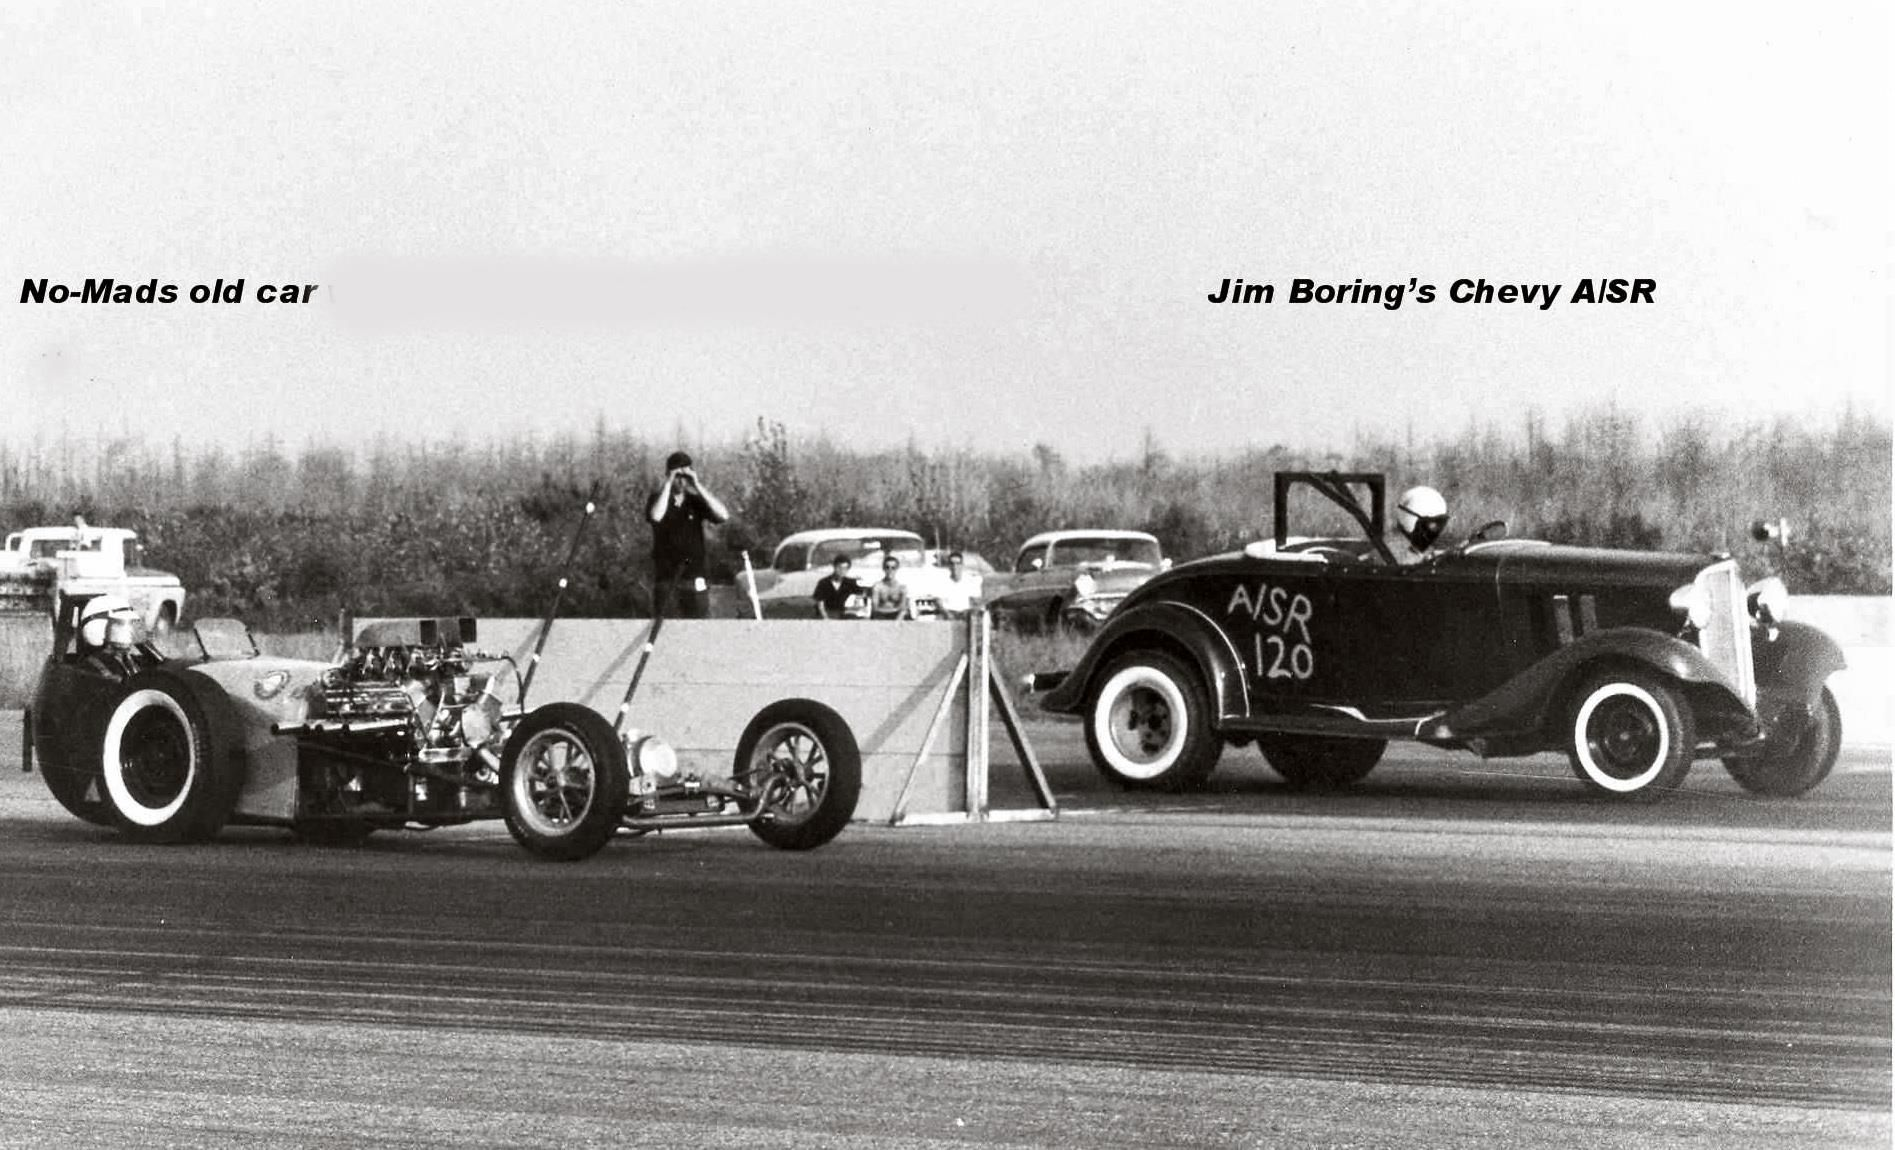 vintage drags | Vintage Drag Racing Photos From Sanford, Maine ...